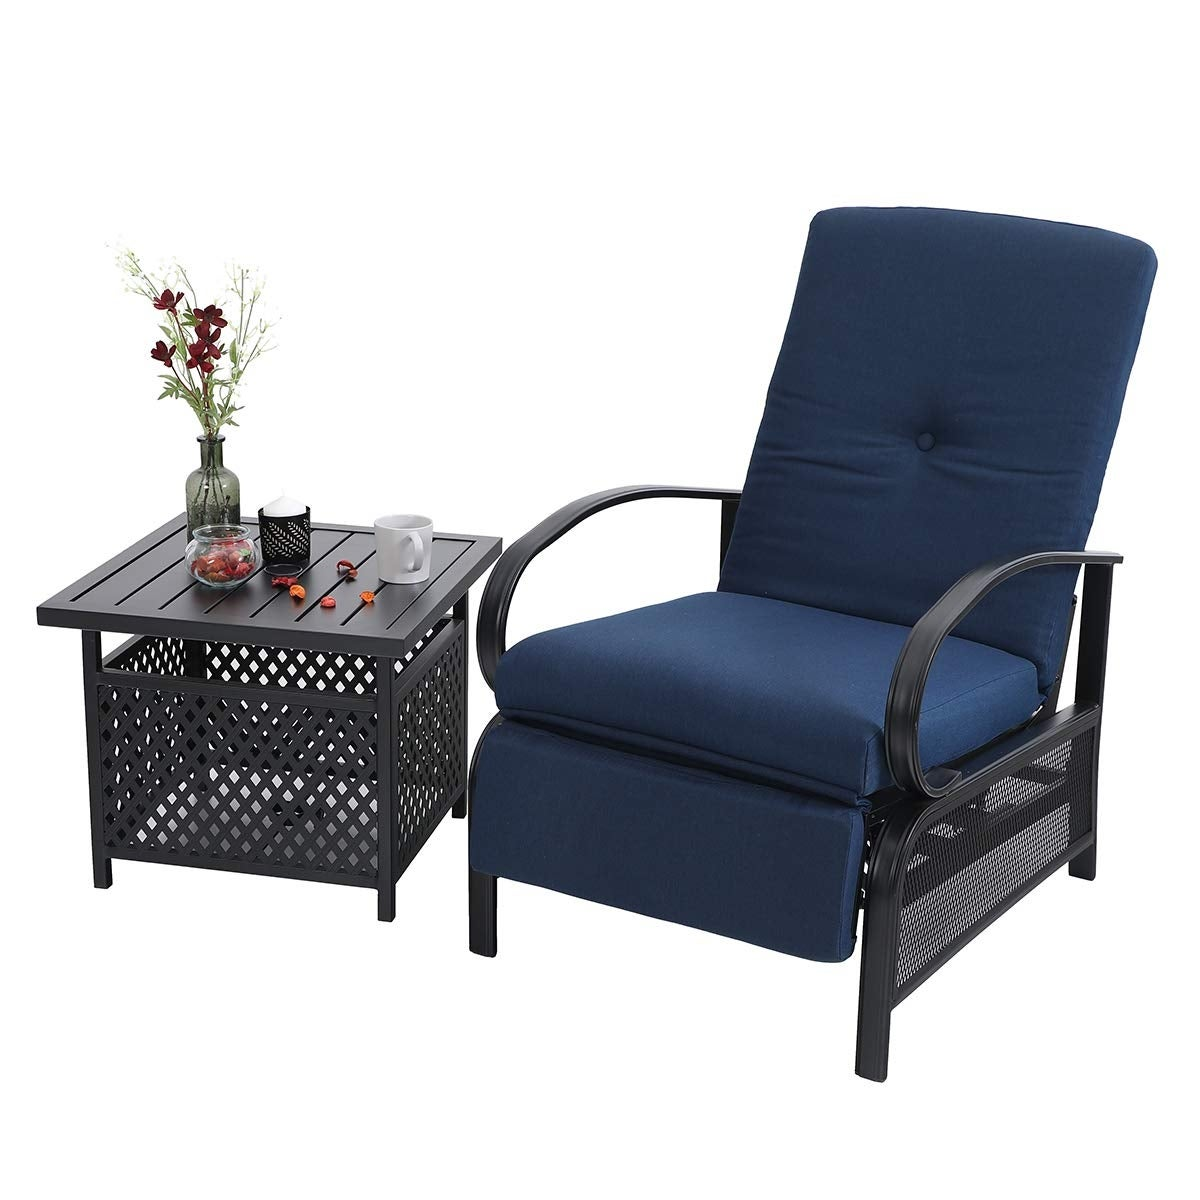 Picture of: Shop Black Friday Deals On Havenside Home Claribelle 2 Piece Adjustable Recliner Chair And Side Table Set Overstock 28895252 Green